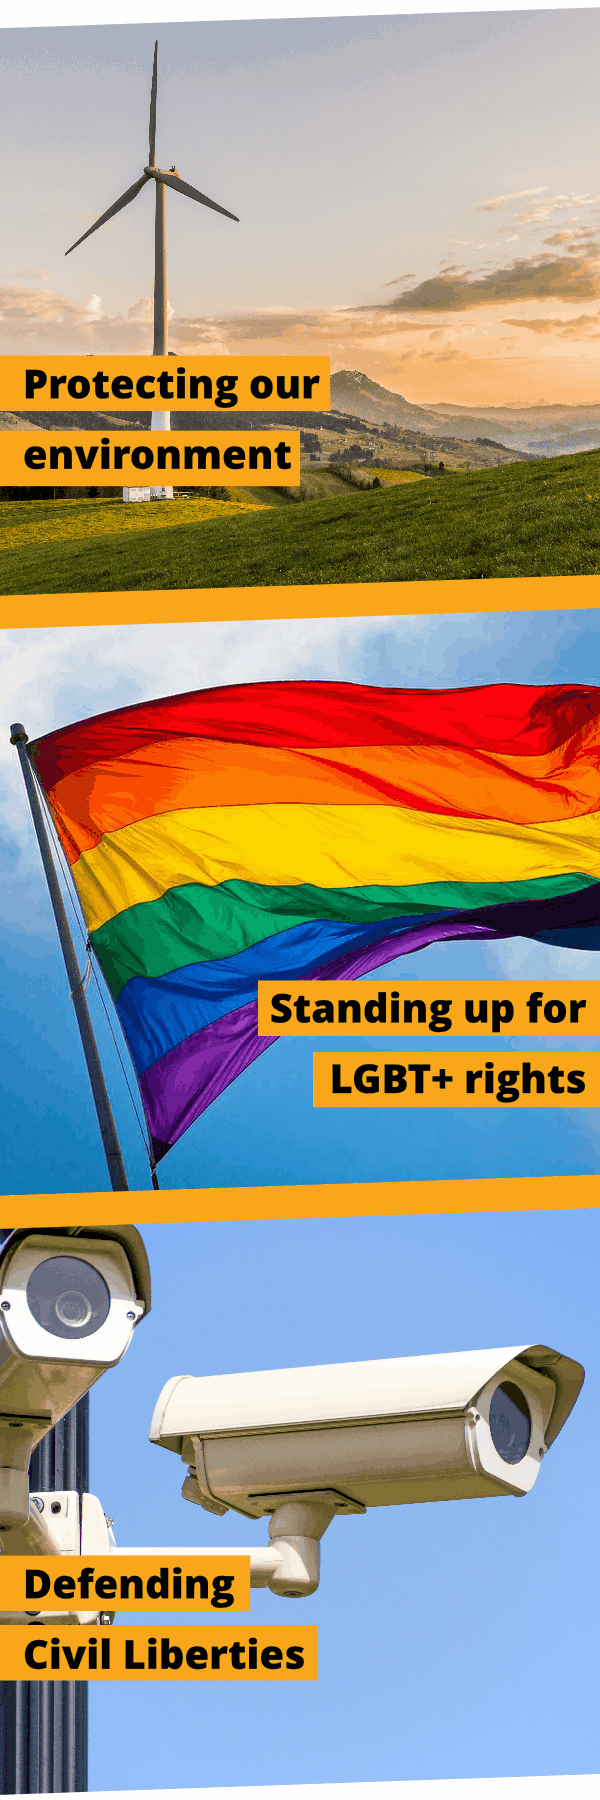 Protecting our environment, standing up for LGBT+ rights and defending civil liberties.